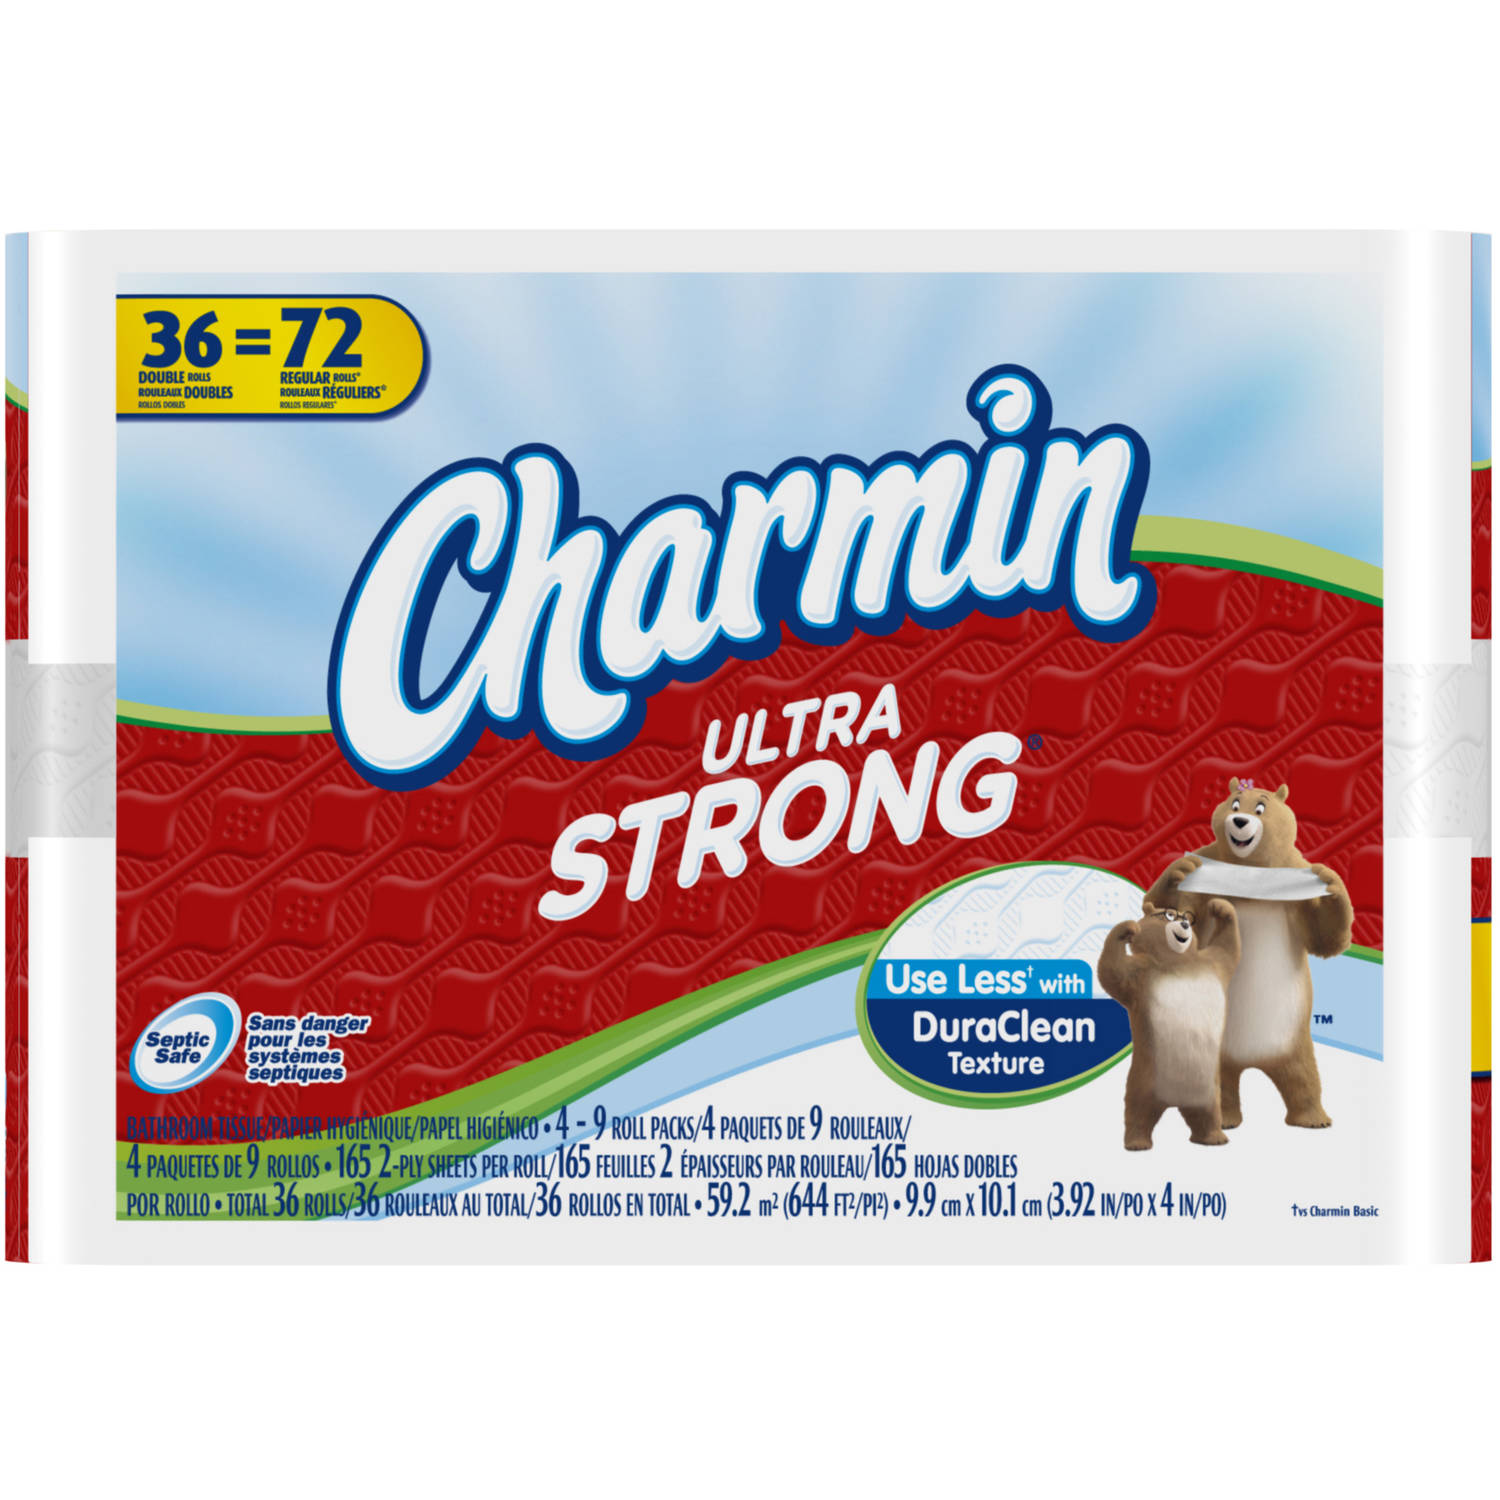 Charmin Ultra Strong Toilet Paper Double Rolls, 165 sheets, 36 rolls